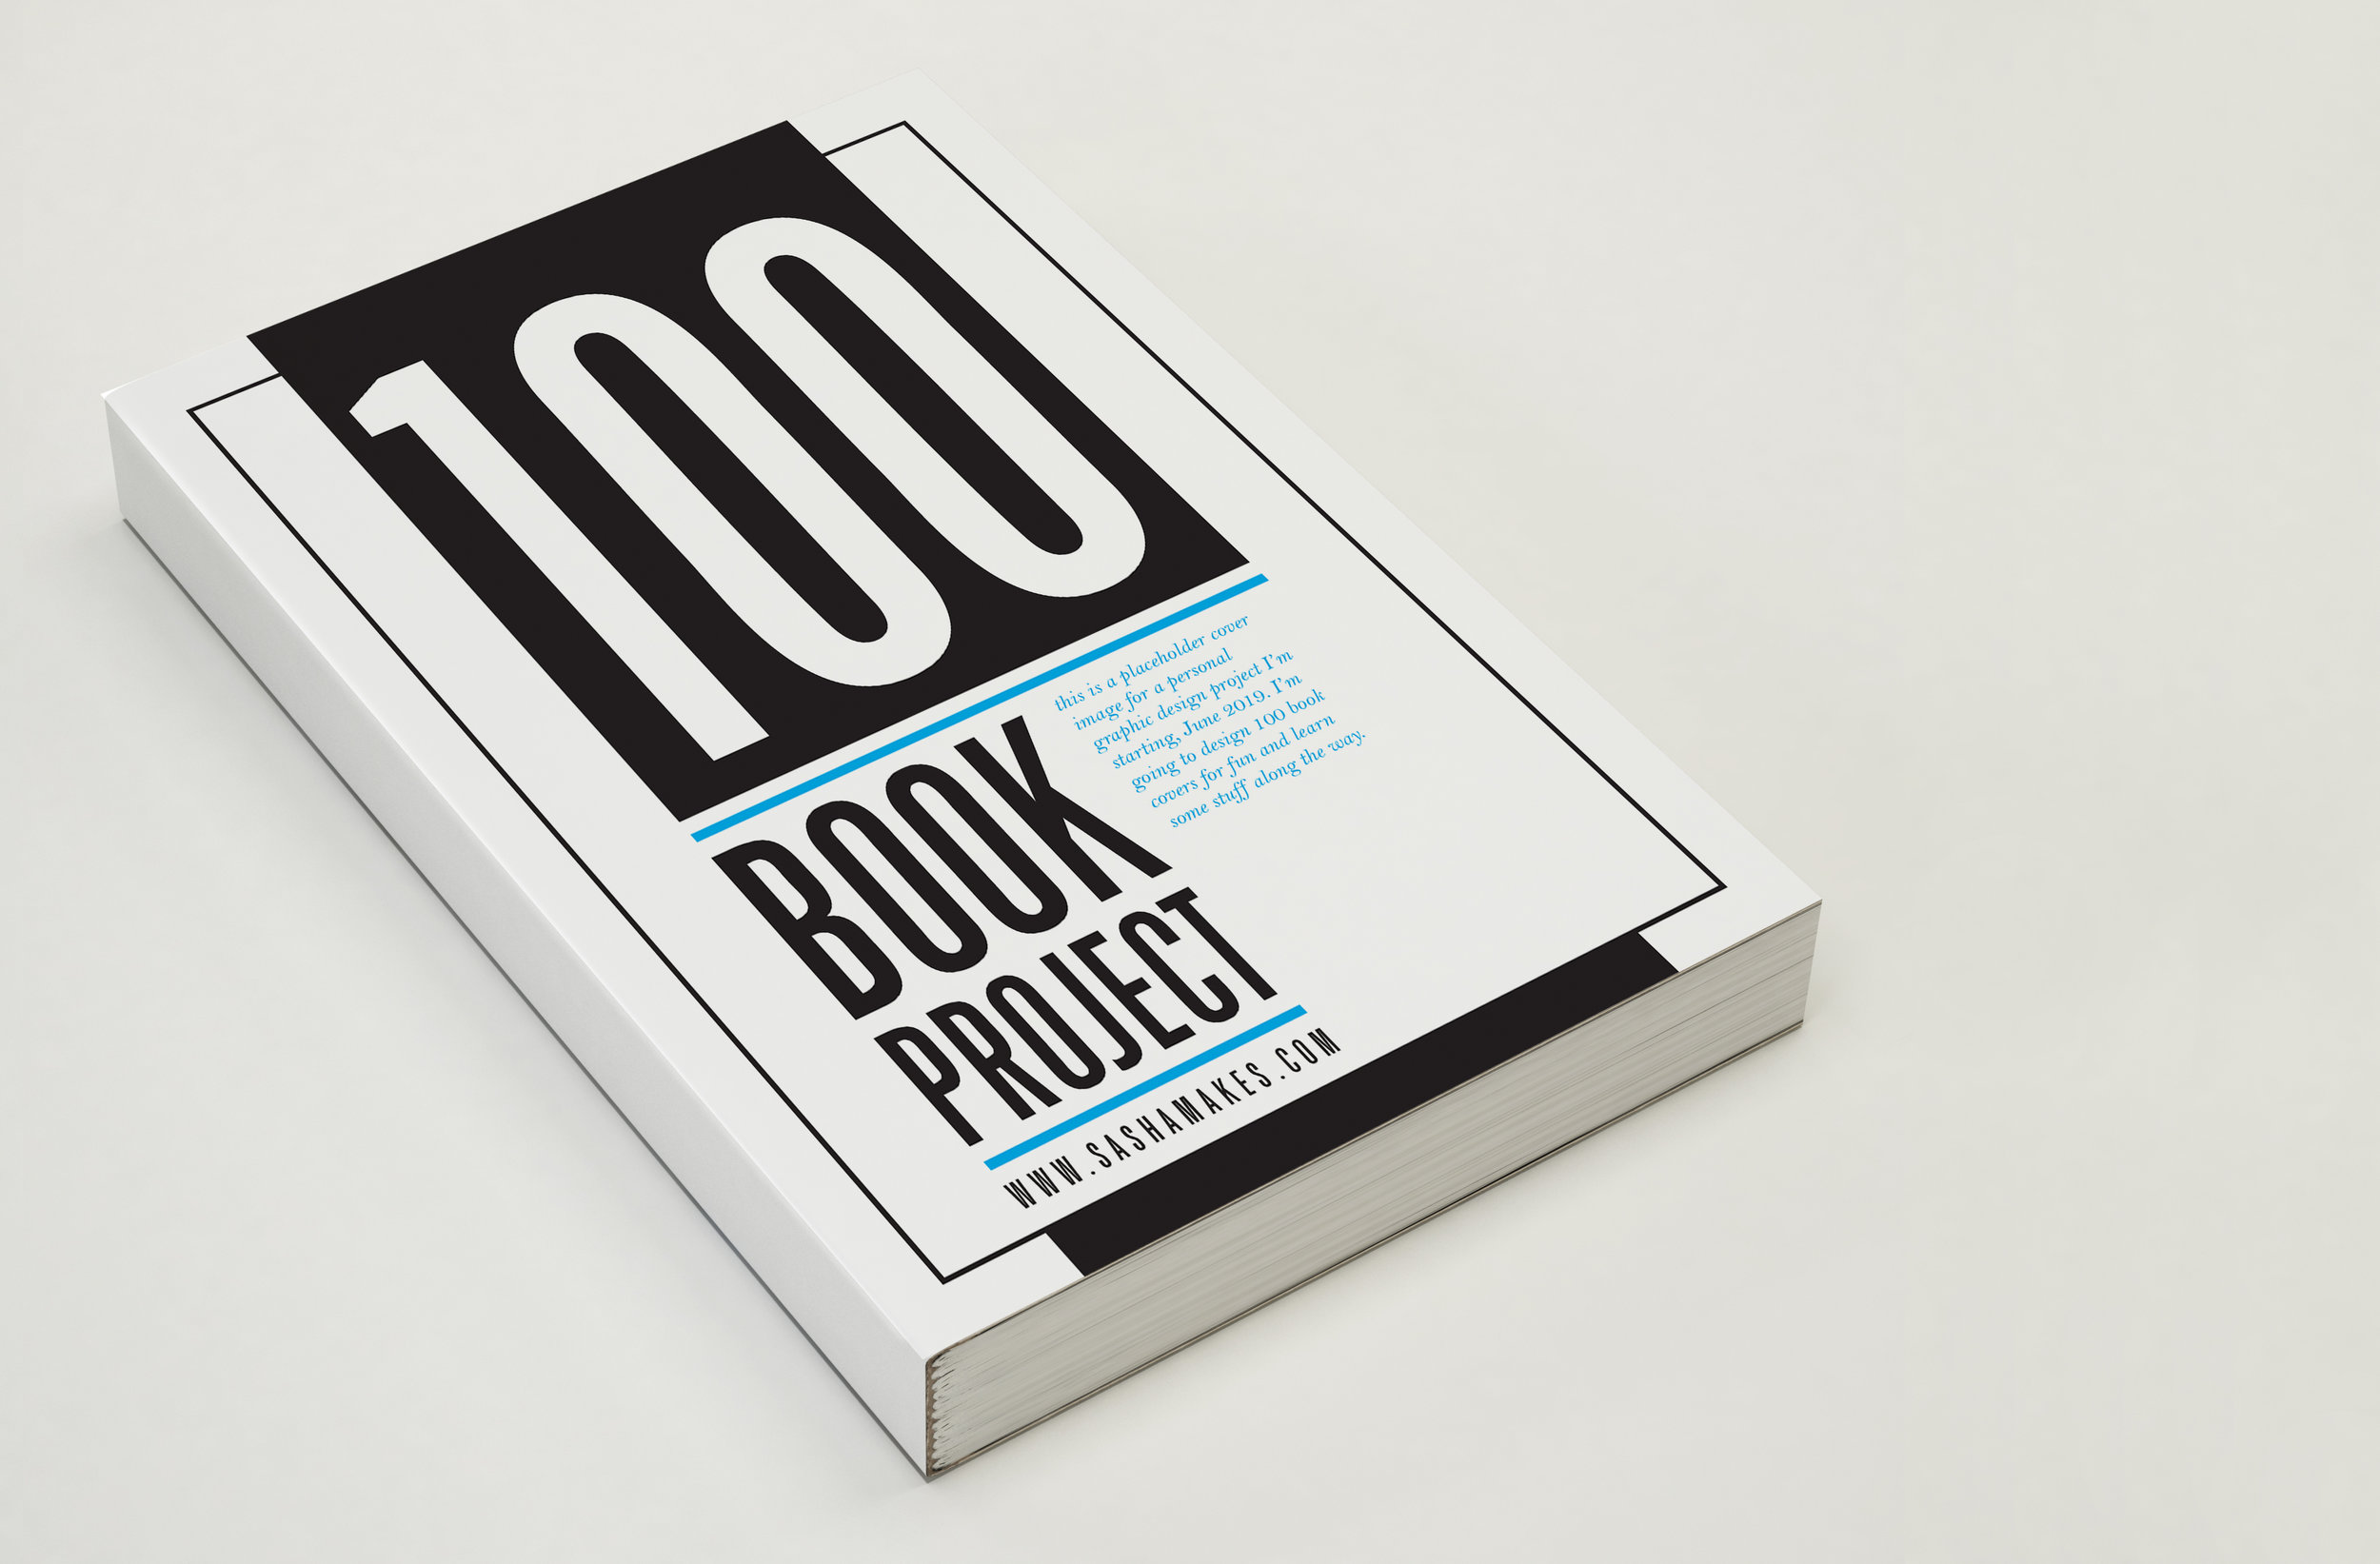 project cover mockup.jpg